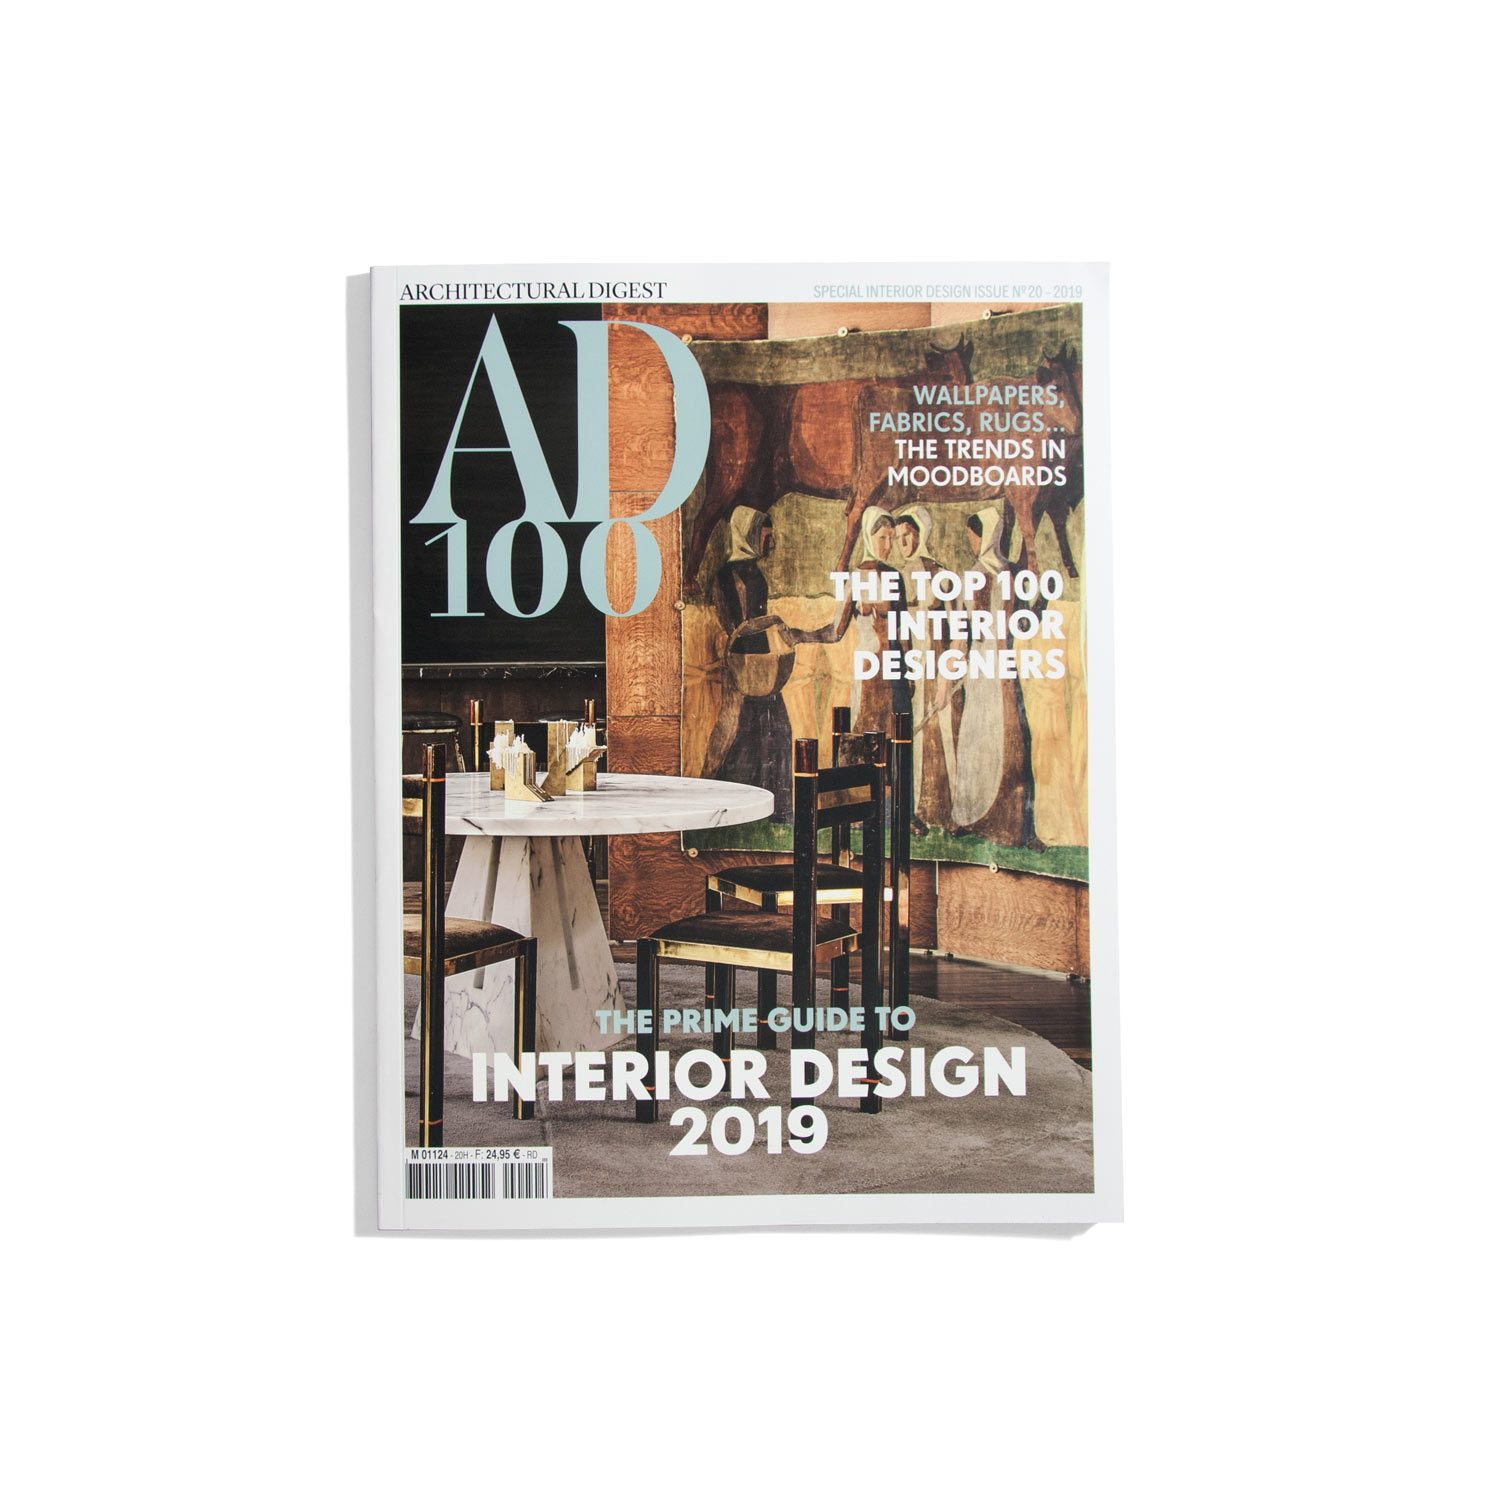 AD100 Architectural Digest -The prime guide to Interior Design 2019